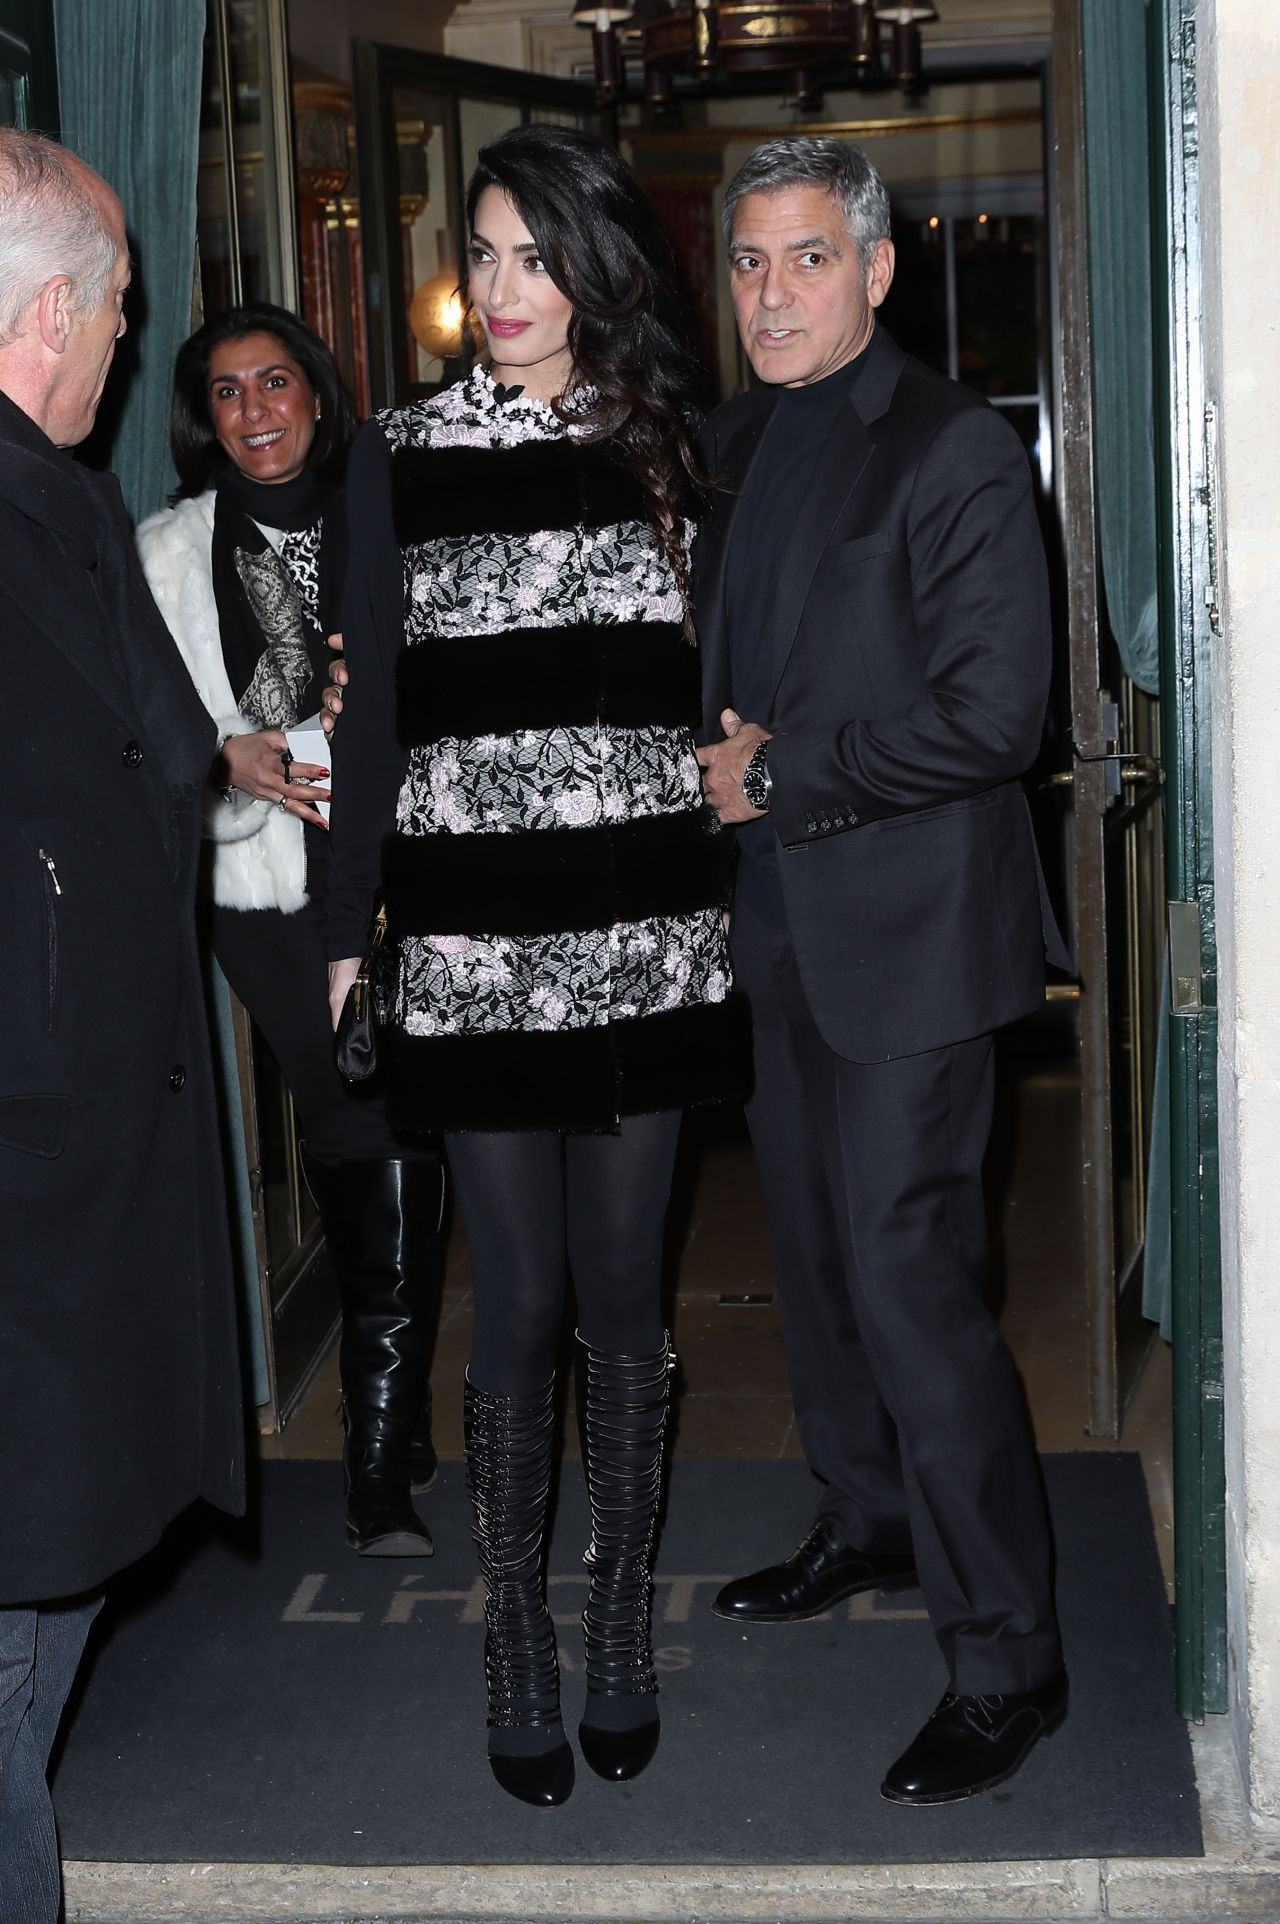 Amal Clooney And George Clooney Leaving Their Hotel To